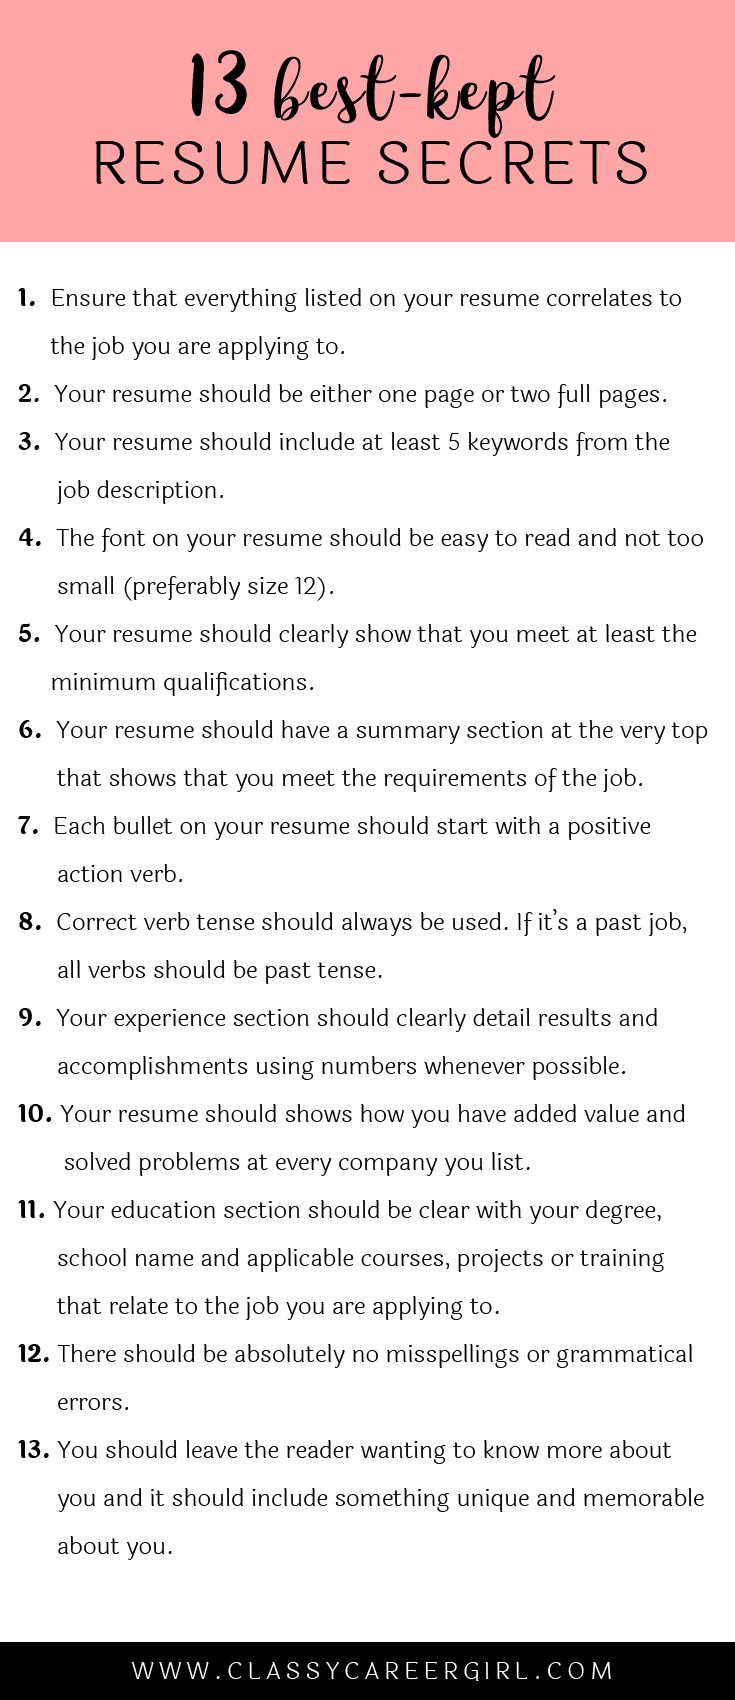 Opposenewapstandardsus  Winning  Ideas About Resume On Pinterest  Cv Format Resume Cv And  With Interesting Some Hiring Managers Will Toss Your Resume Out If You Dont Know These  With Astounding Modern Resume Template Free Also How To Make A Perfect Resume In Addition Copy Of Resume And Profile Resume As Well As Where To Post Resume Additionally Theater Resume Template From Pinterestcom With Opposenewapstandardsus  Interesting  Ideas About Resume On Pinterest  Cv Format Resume Cv And  With Astounding Some Hiring Managers Will Toss Your Resume Out If You Dont Know These  And Winning Modern Resume Template Free Also How To Make A Perfect Resume In Addition Copy Of Resume From Pinterestcom